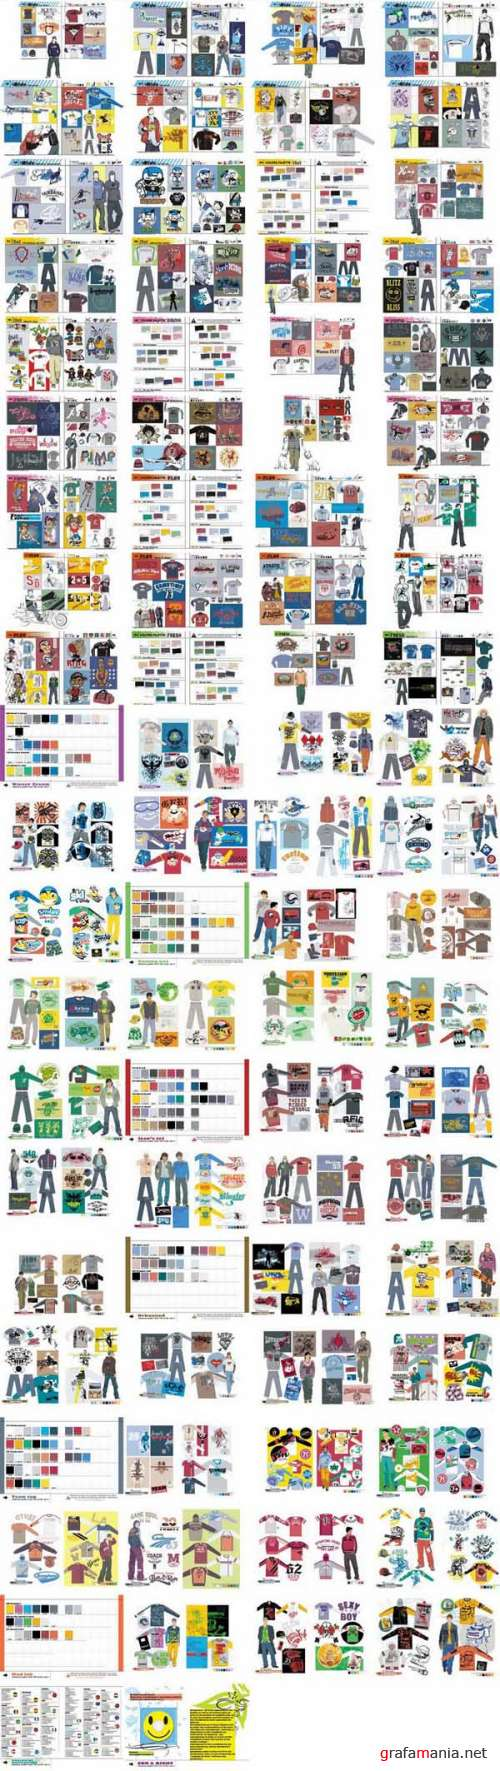 Reference Graphic Books (1-2 Part)